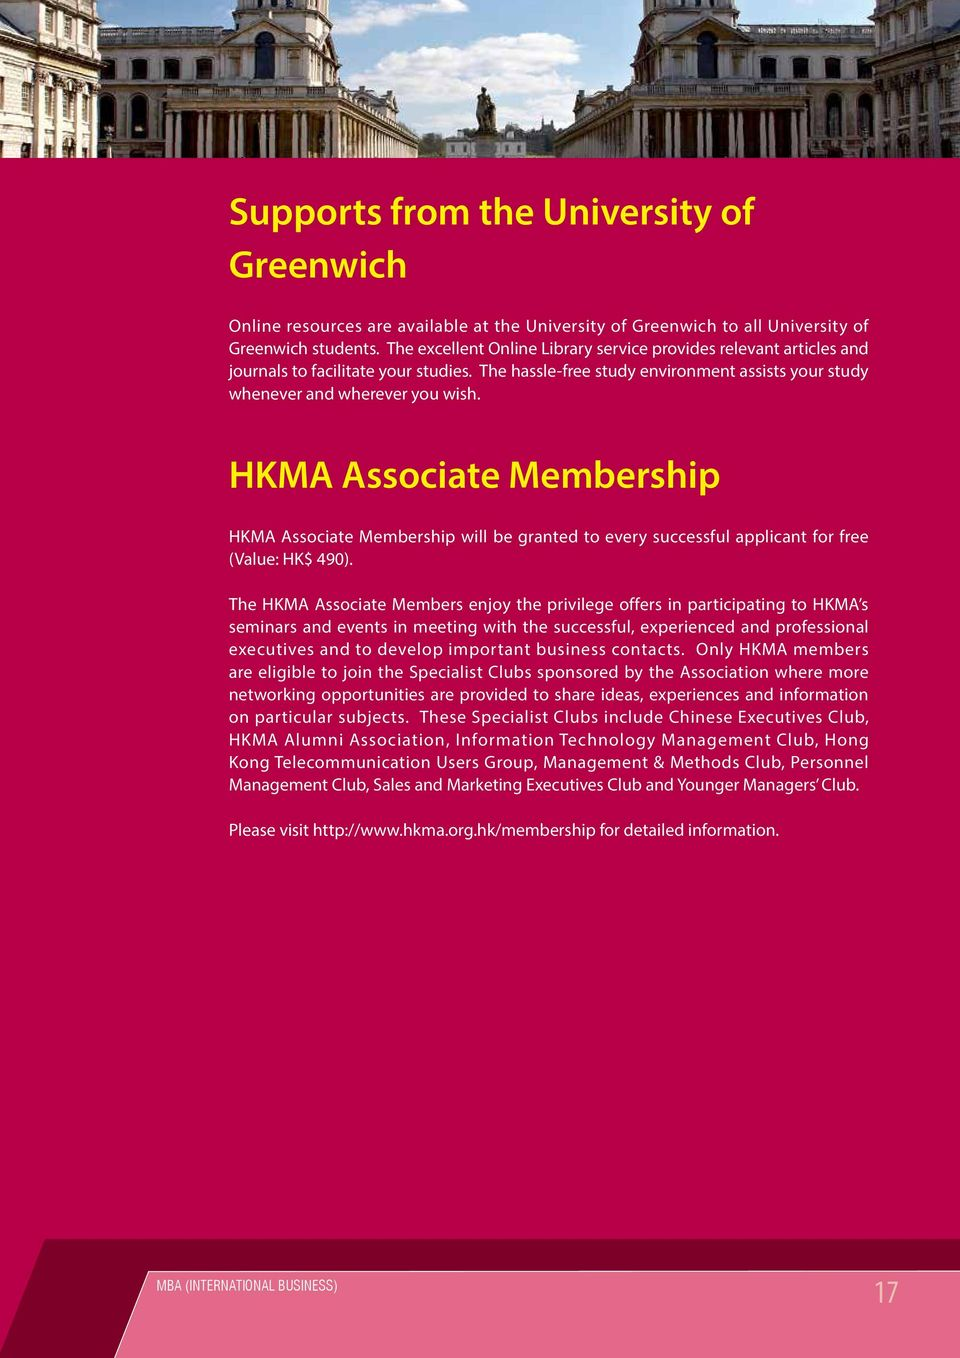 HKMA Associate Membership HKMA Associate Membership will be granted to every successful applicant for free (Value: HK$ 490).